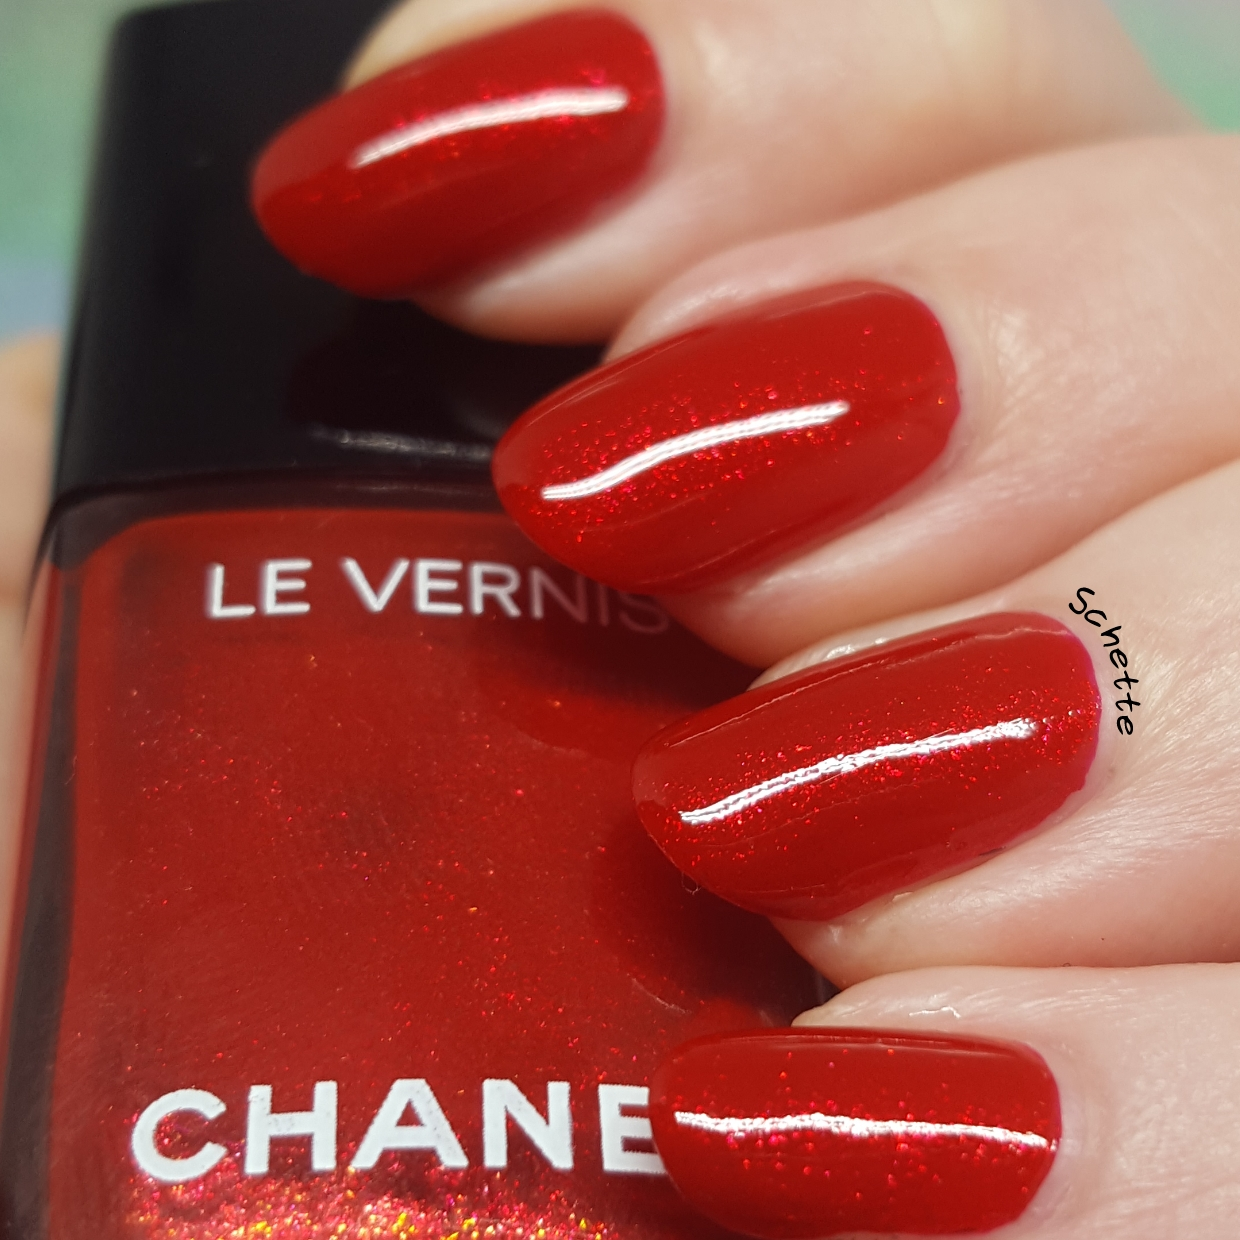 Chanel - Flamboyance